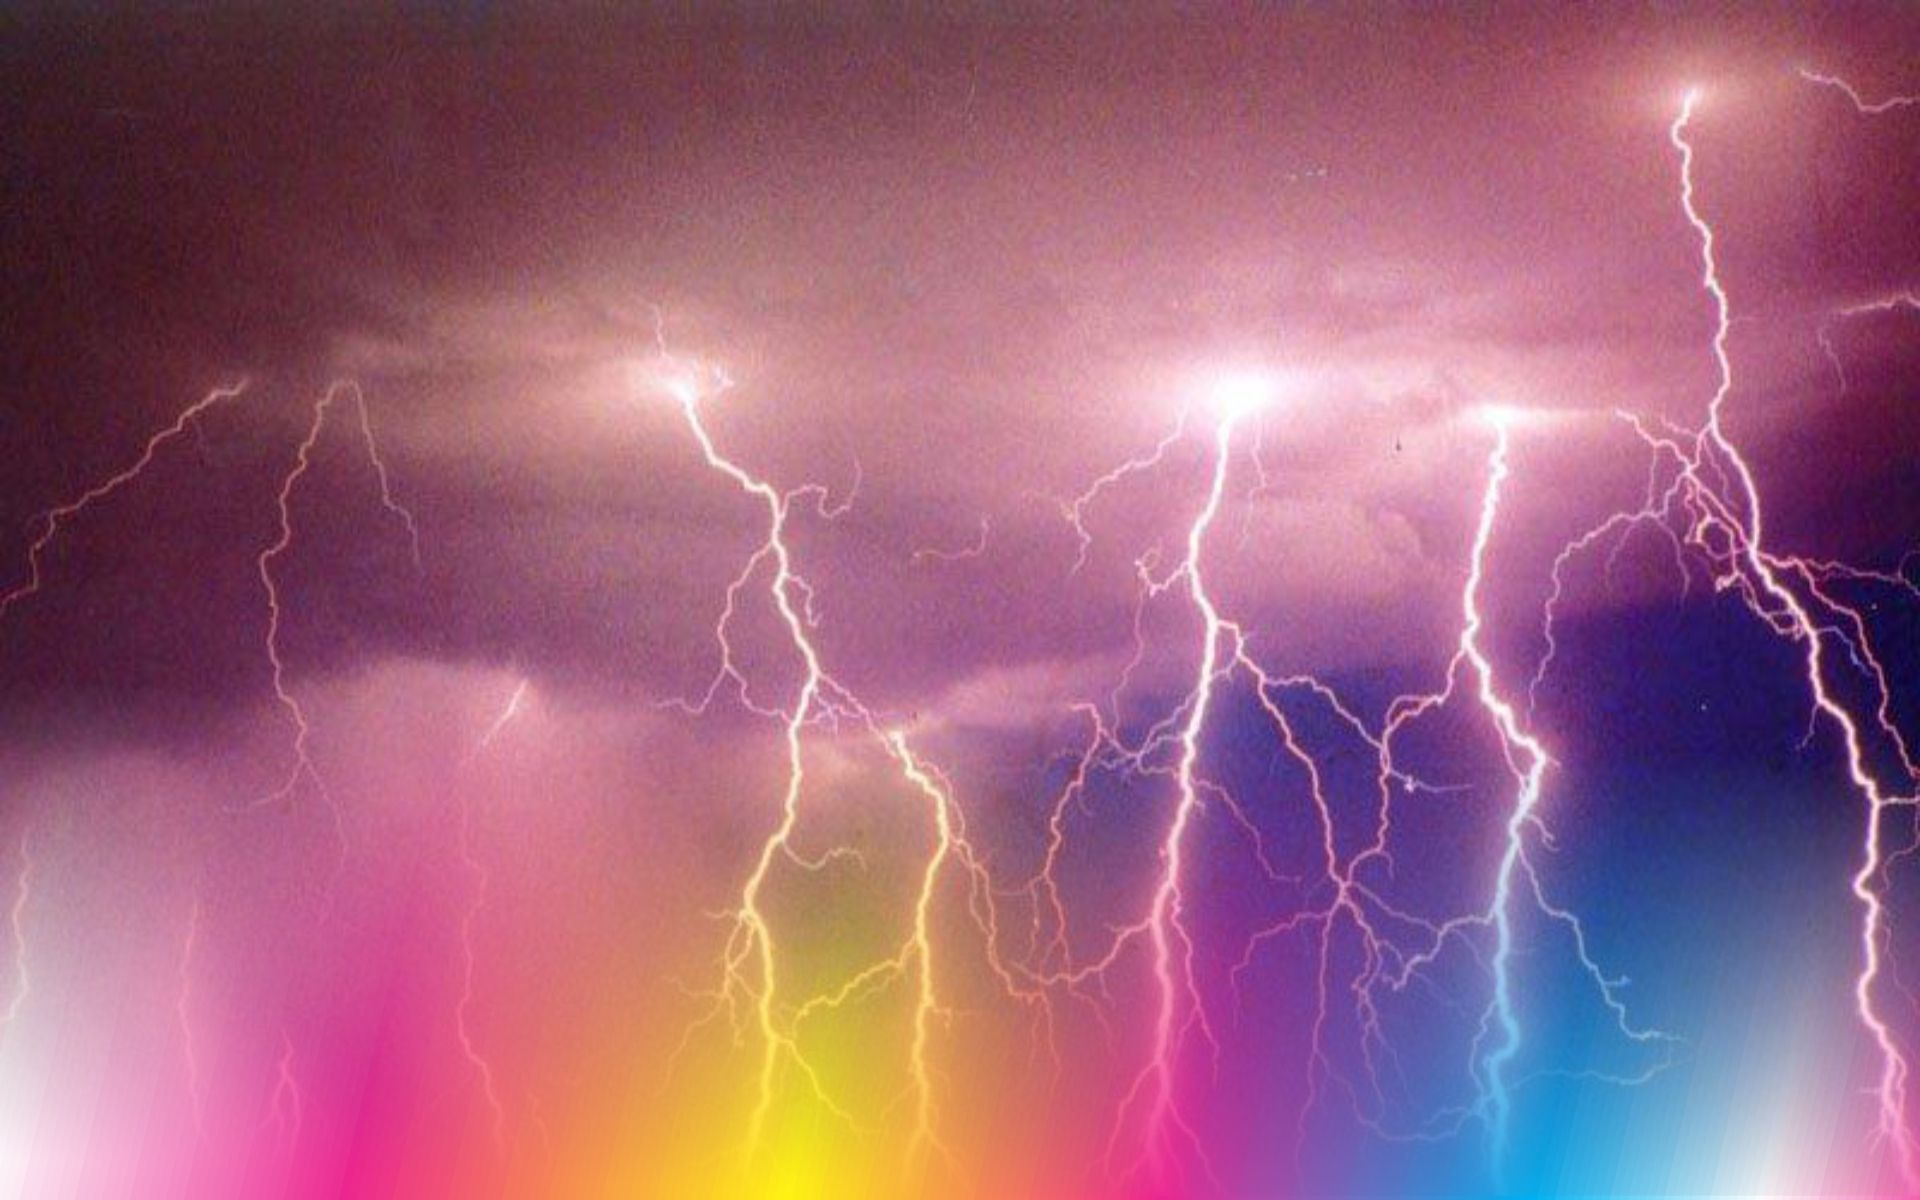 Wallpapers For > Pink Lightning Wallpaper Sky Watch, Storm Clouds, Lightning Strikes,